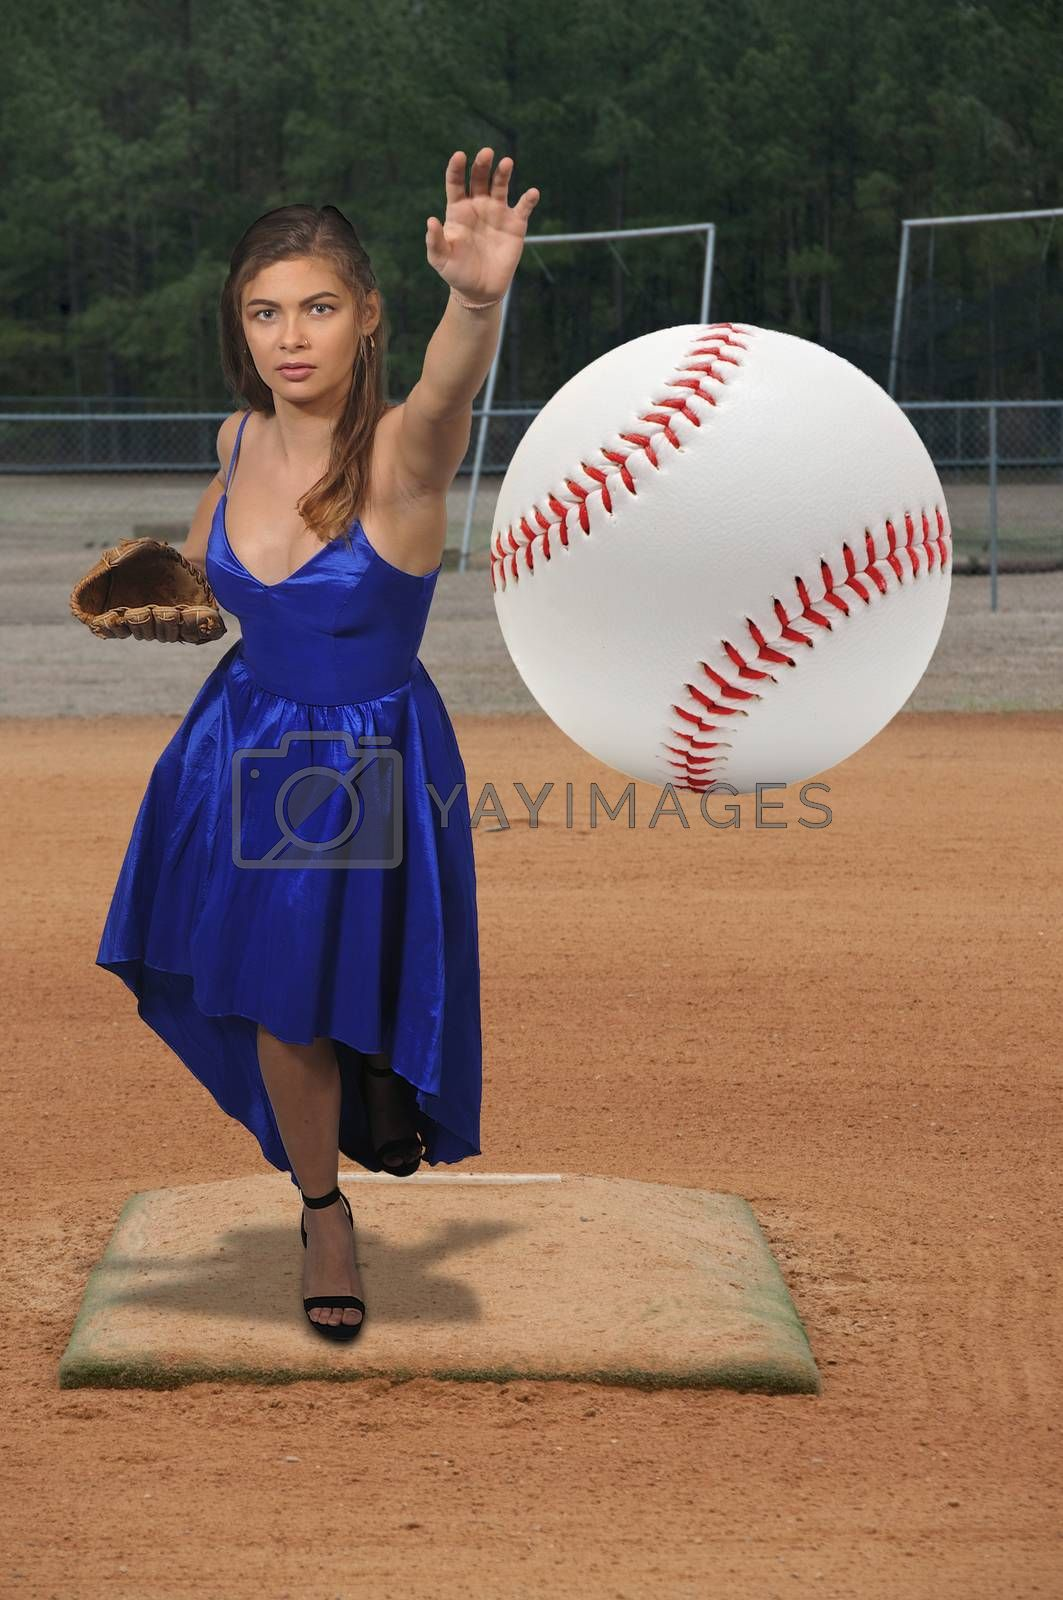 Woman Baseball Player by robeo